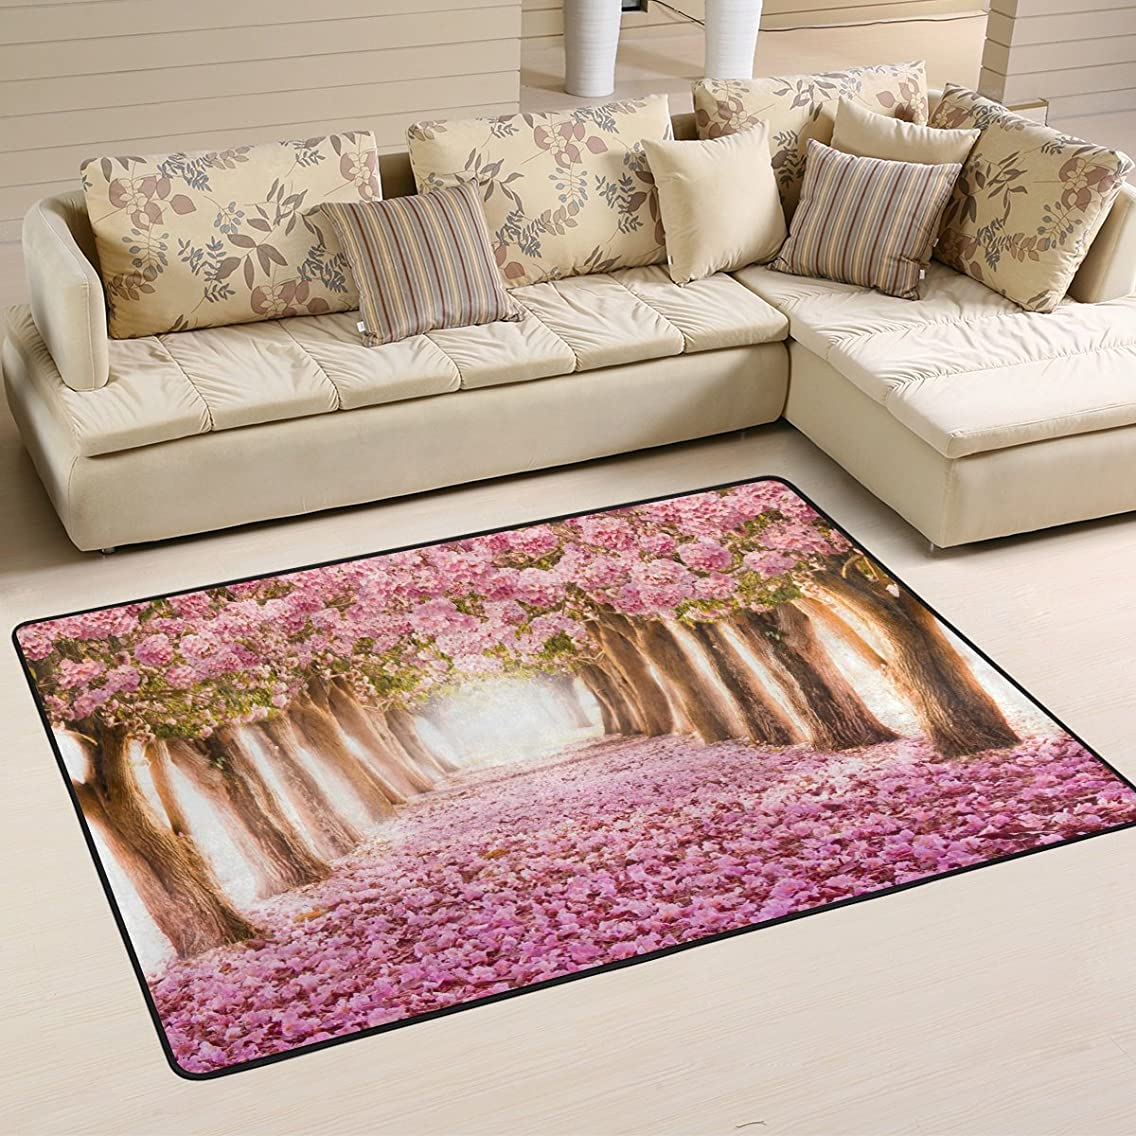 Naanle Flower Trees Area Rug 4'x6', Pink Cherry Blossom Polyester Area Rug Mat for Living Dining Dorm Room Bedroom Home Decorative